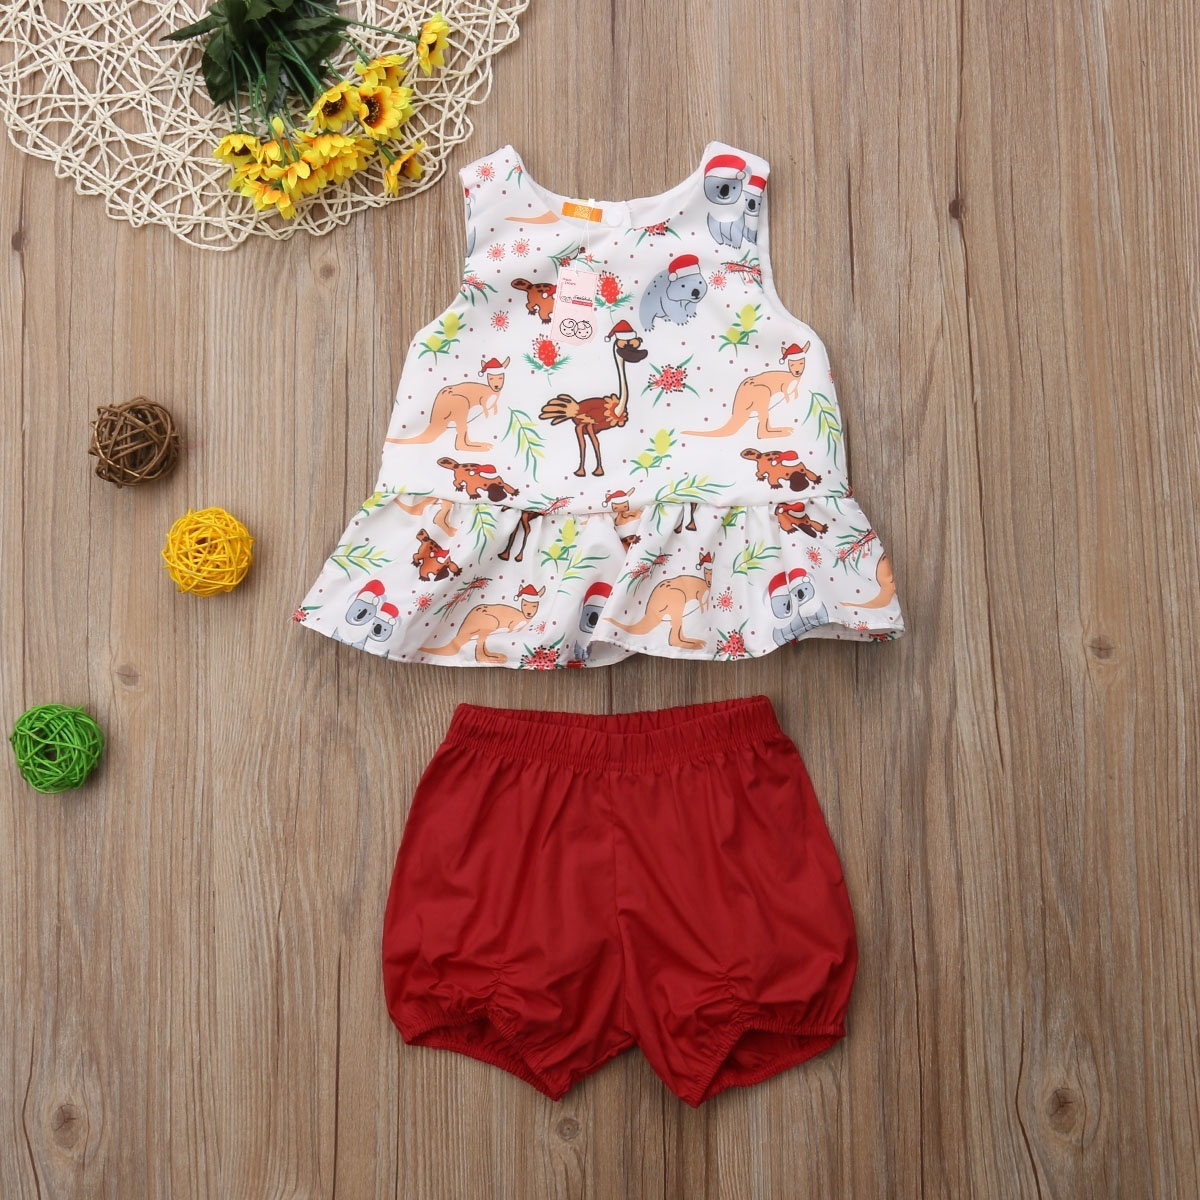 5a1f4a38 Walmart Toddler Girl Christmas Dresses